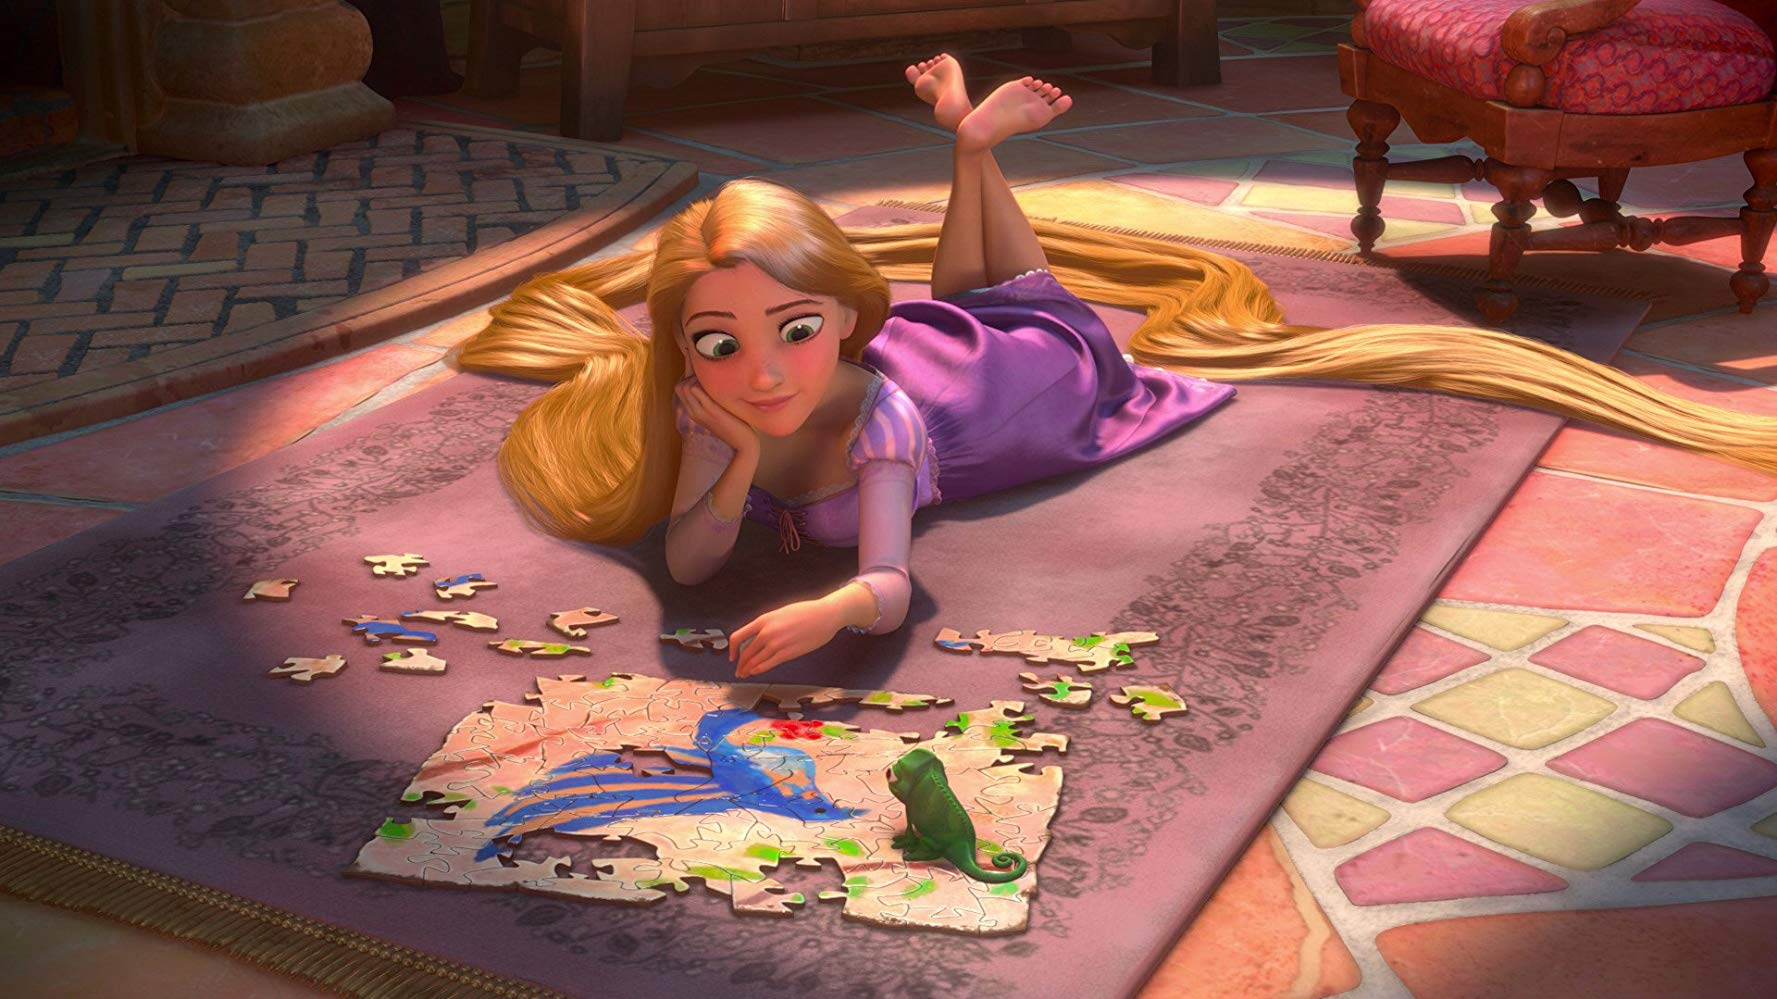 An imprisoned Rapunzel (voiced by Mandy Moore) along with her chameleon companion Pascal in Tangled (2010)